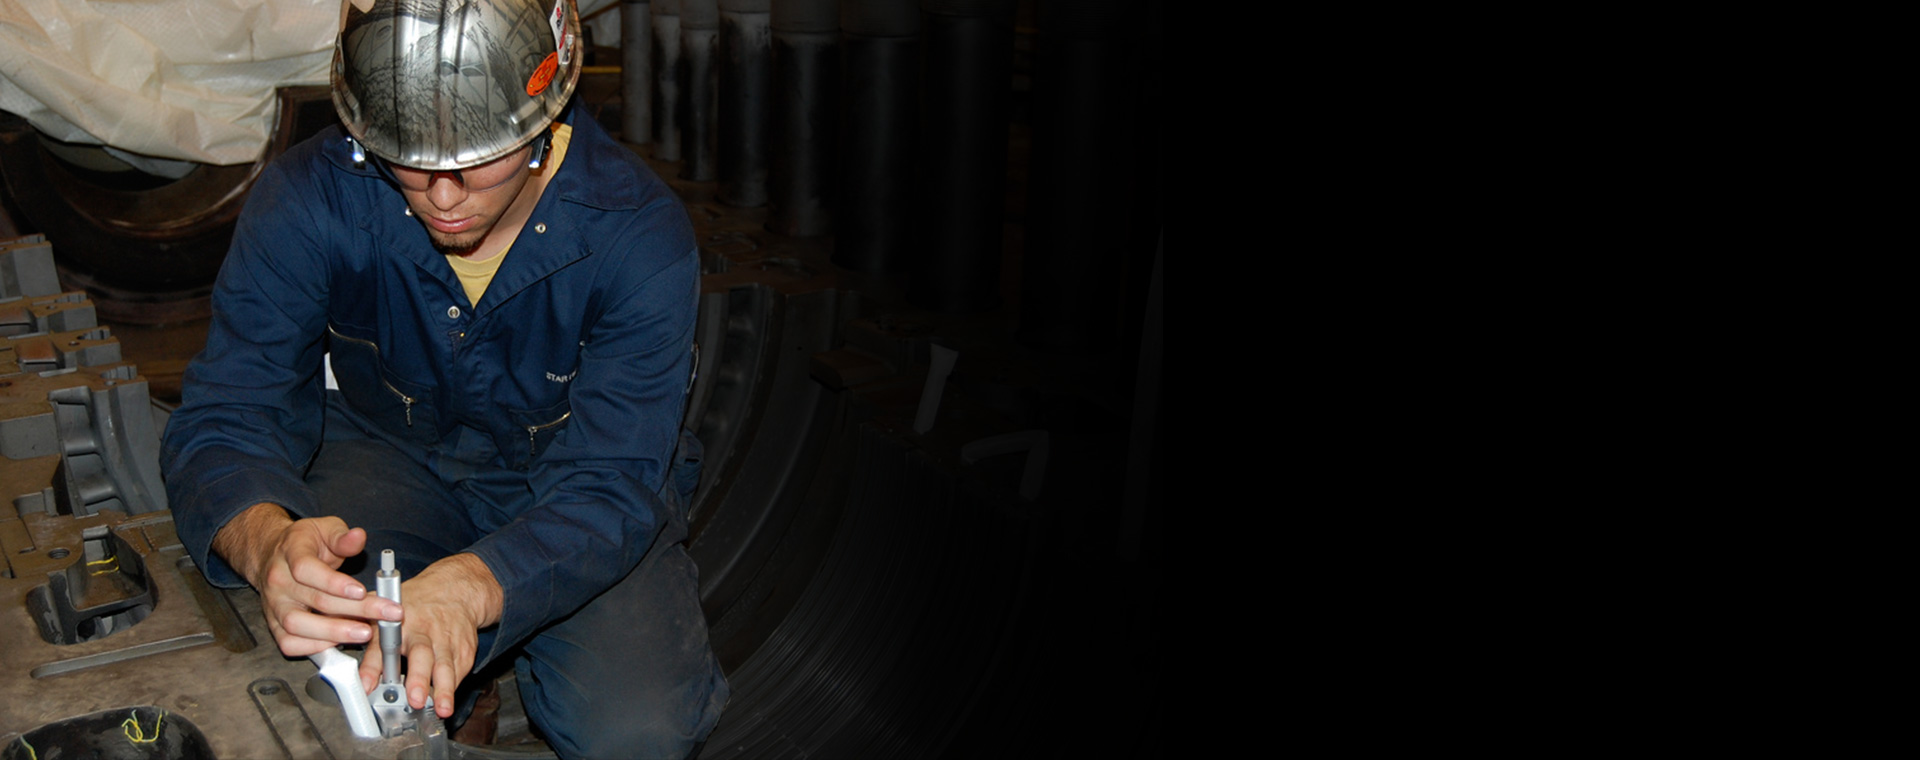 The Experts in Turbine Seals and Performance.